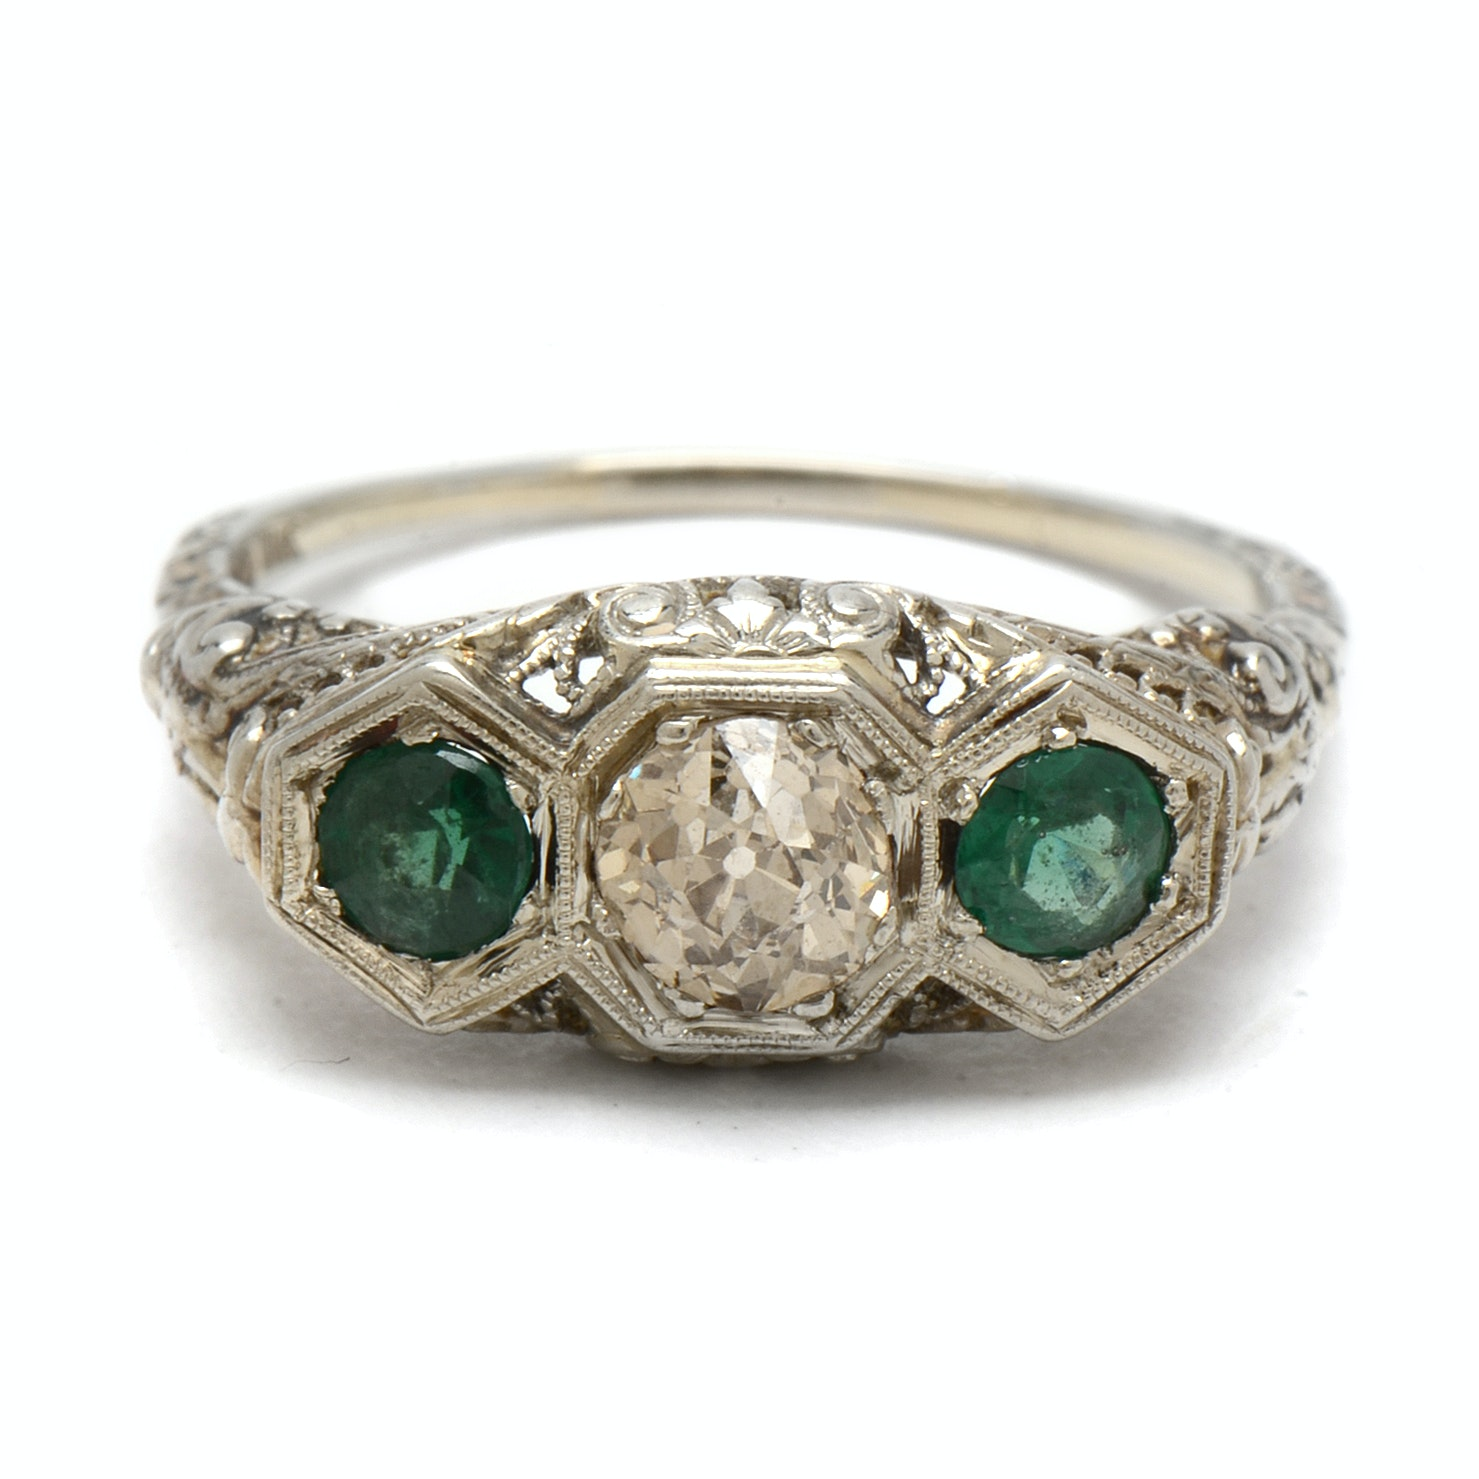 Late Edwardian 18K White Gold Diamond and Green Garnet Doublet Filigree Ring